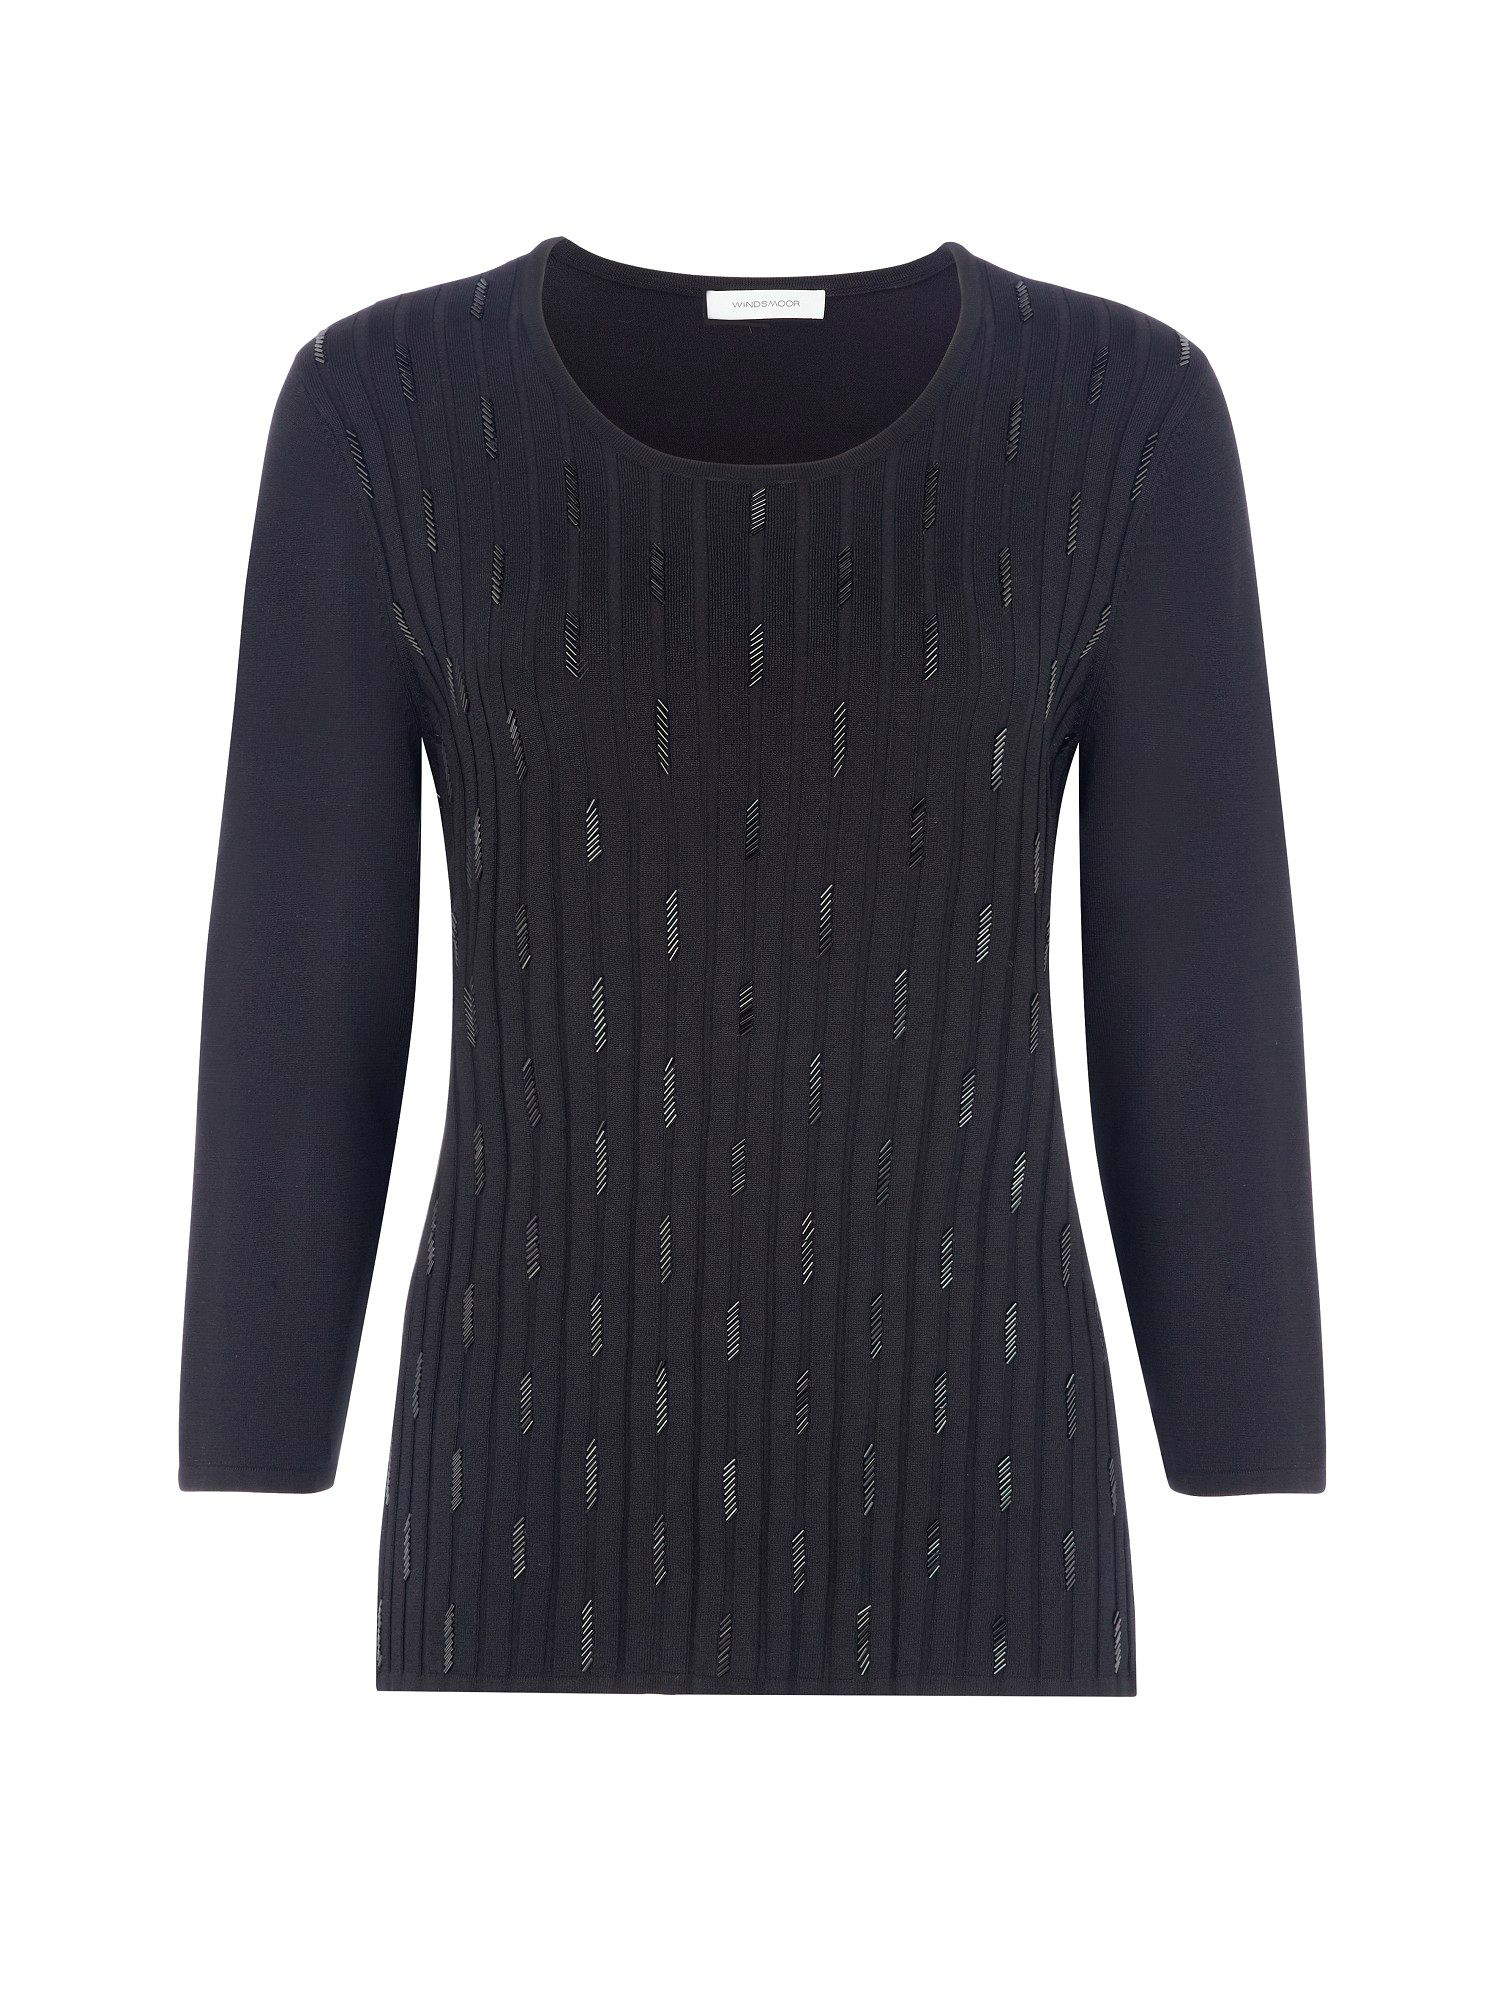 Black embellished jumper